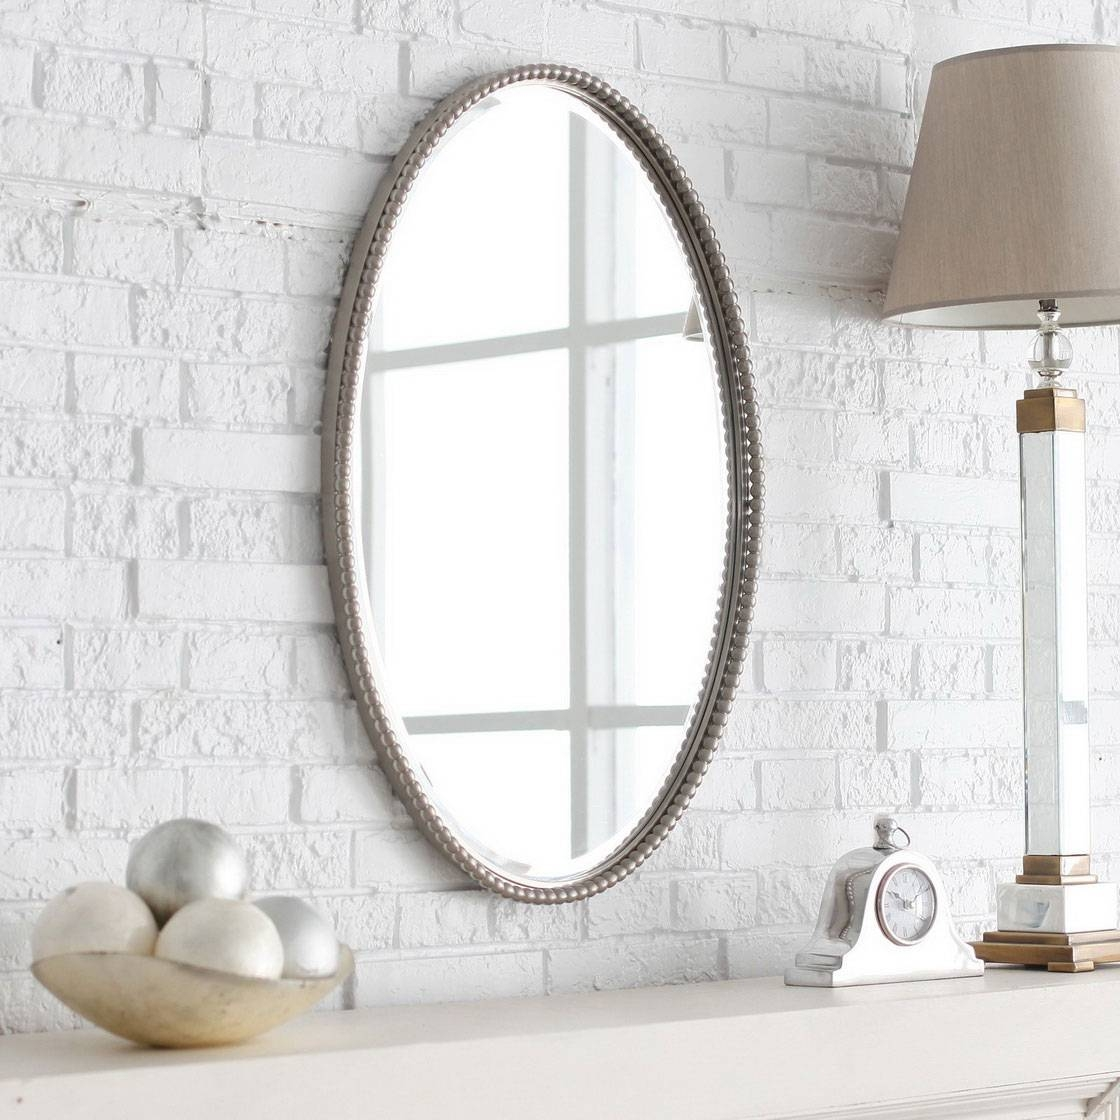 Bathroom Oval Mirrors - Add Beauty And Elegance To Your Bathroom inside Antique White Oval Mirrors (Image 5 of 15)